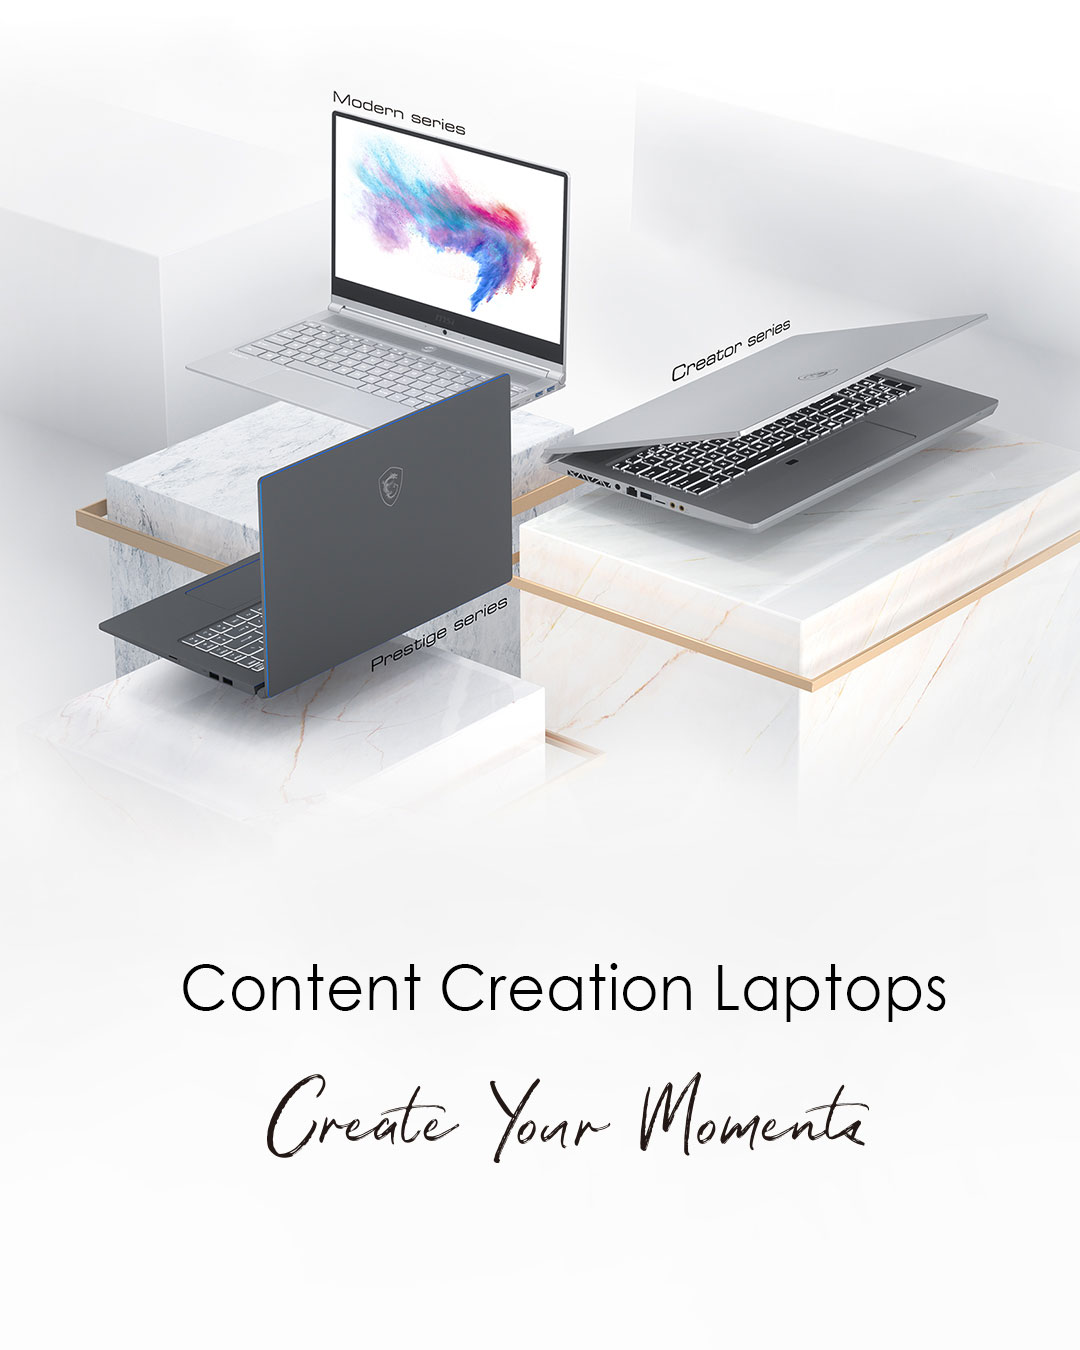 Content Creation Laptops